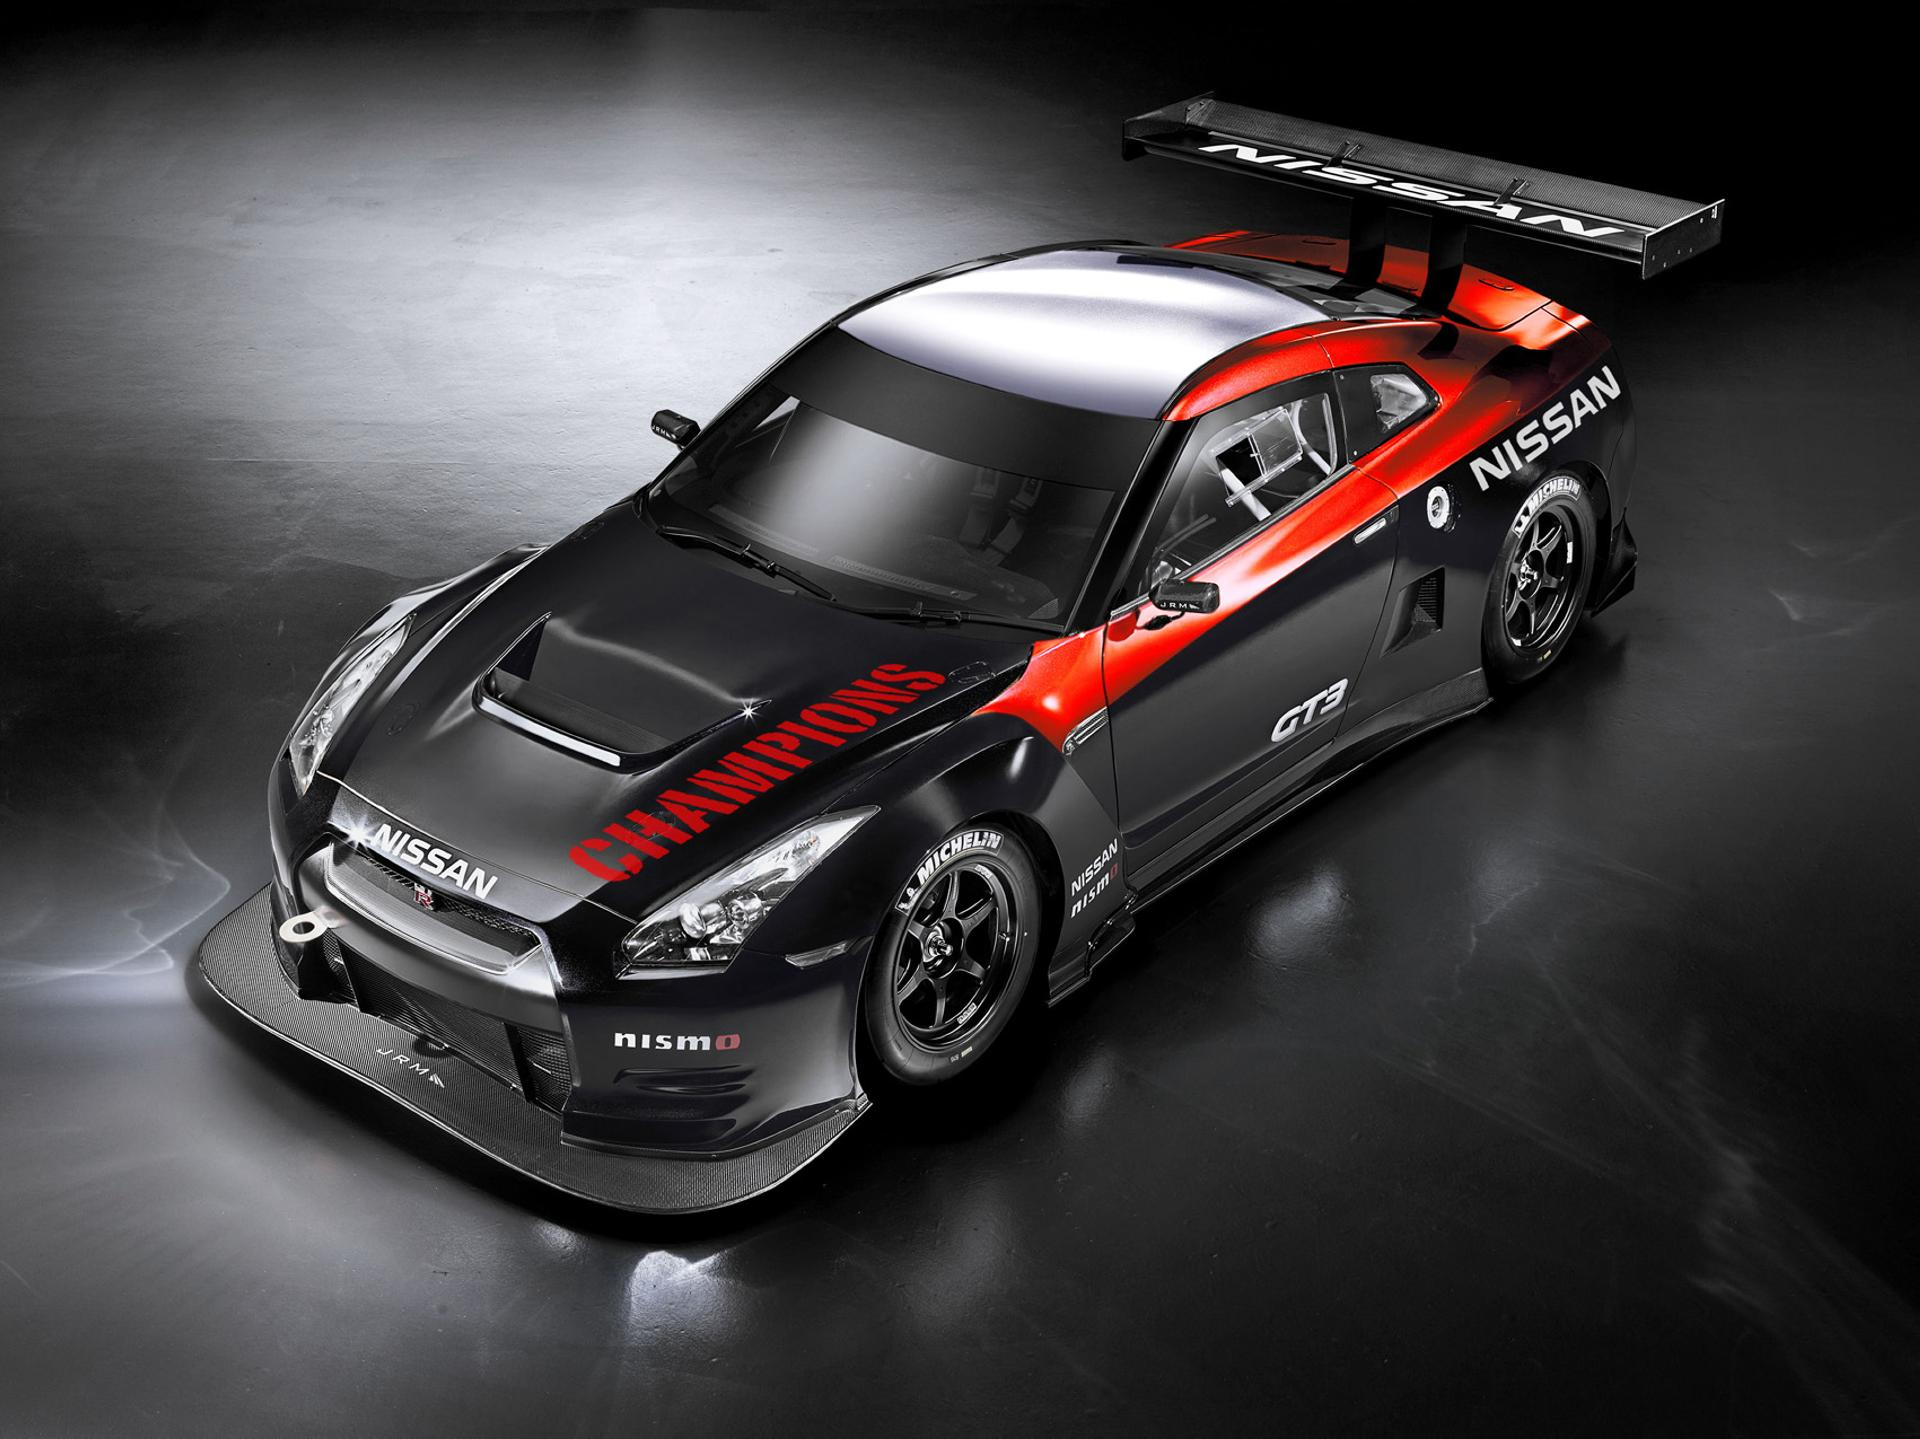 2012 Nissan GT-R Nismo GT3 News and Information, Research, and Pricing